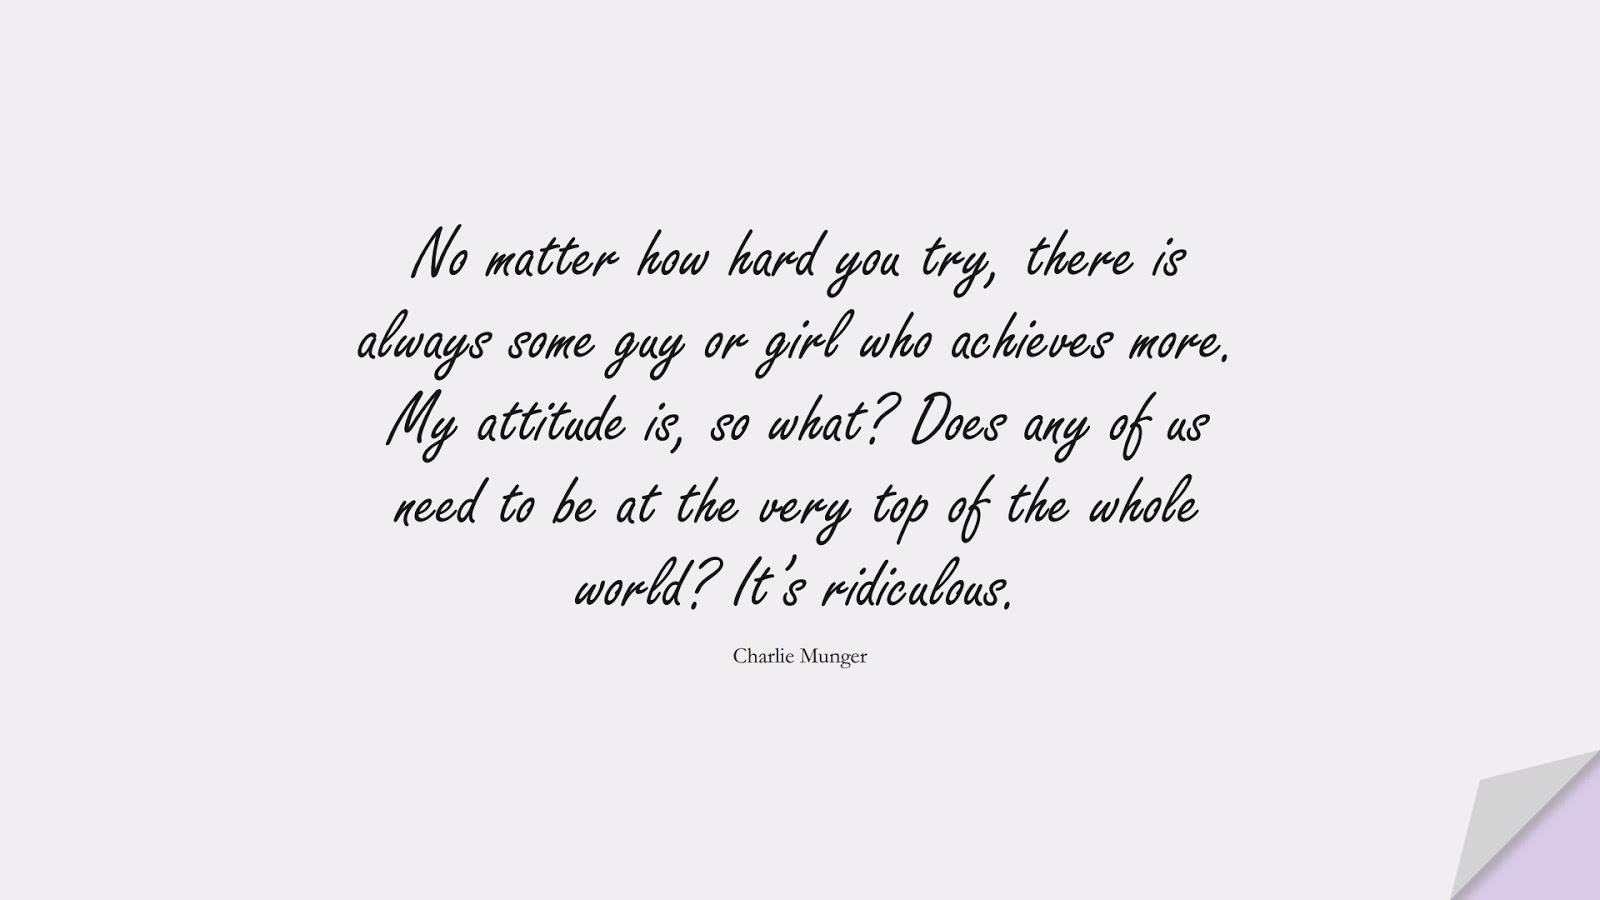 No matter how hard you try, there is always some guy or girl who achieves more. My attitude is, so what? Does any of us need to be at the very top of the whole world? It's ridiculous. (Charlie Munger);  #SelfEsteemQuotes